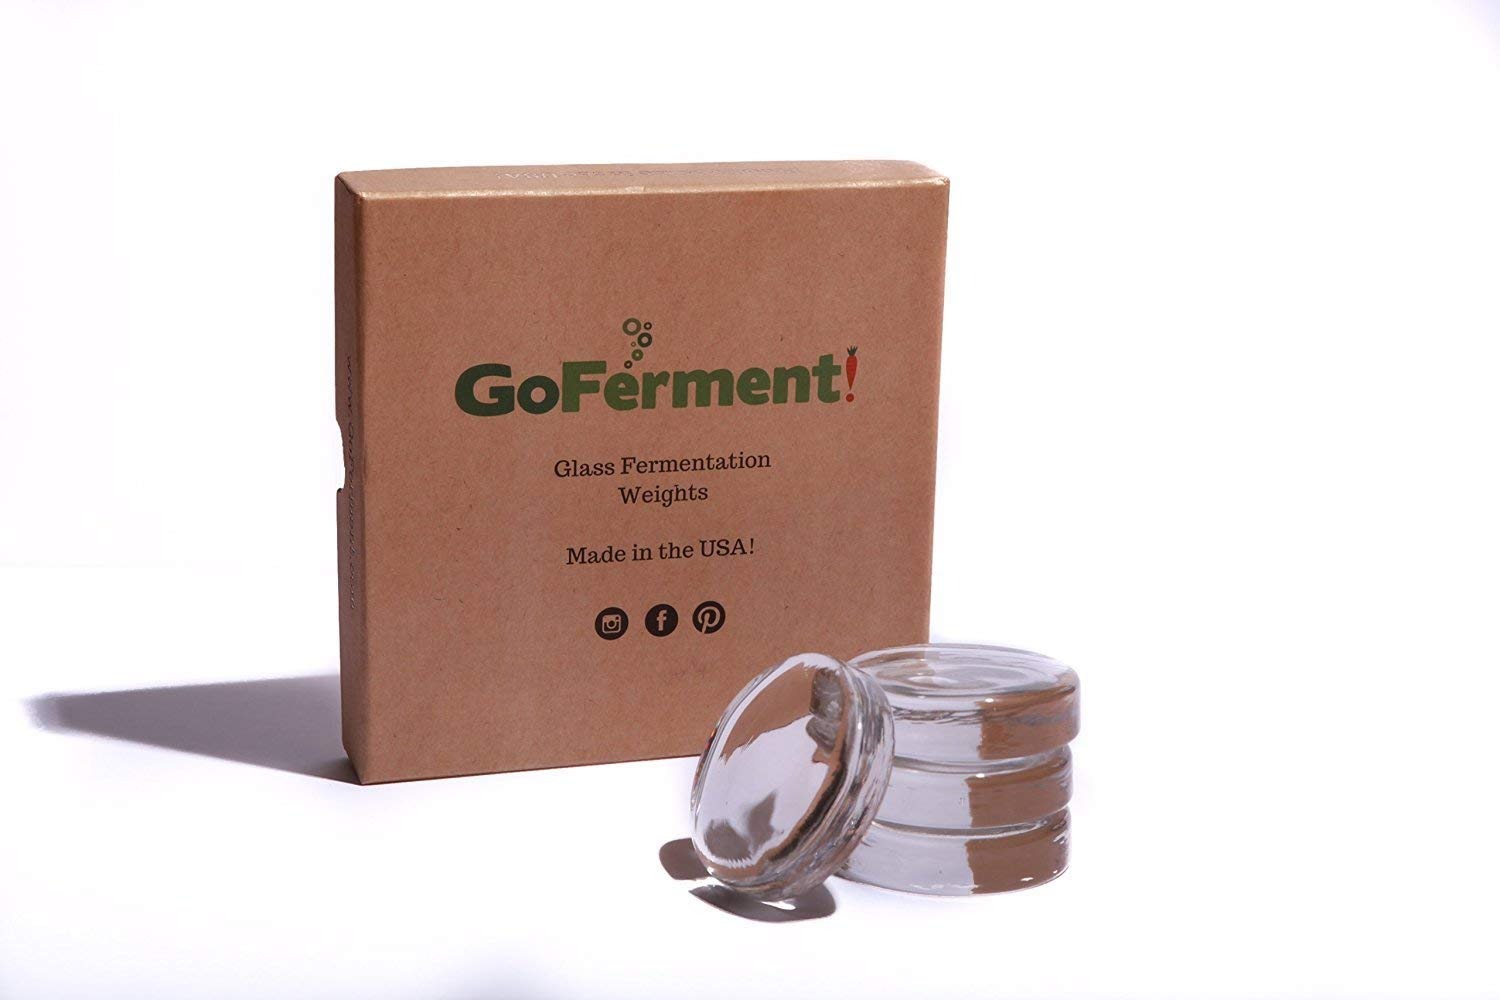 Go Ferment! Wide Mouth Mason Jar Glass Fermentation Weights & Recipe E-Book - Made in the USA by Go Ferment!